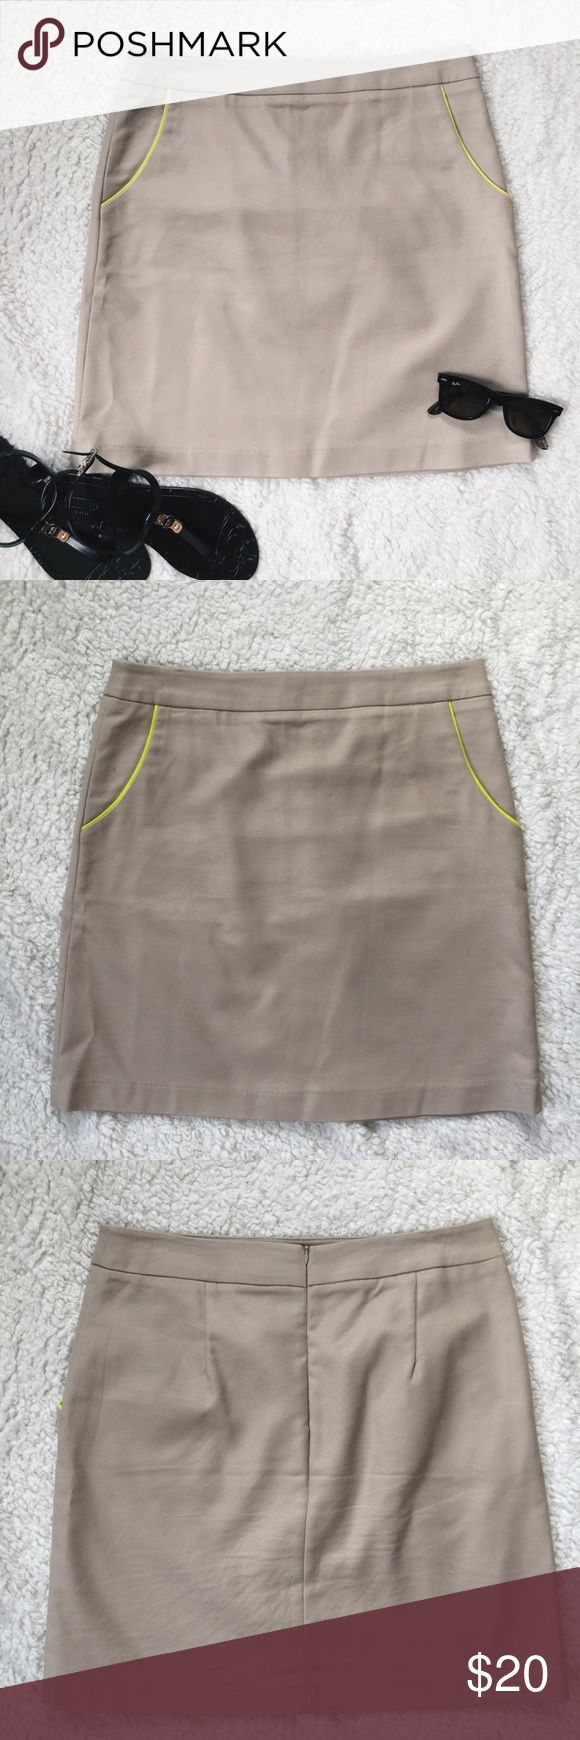 Cynthia Rowley Khaki Skirt Khaki pencil skirt. Pockets with neon yellow piping accents. Back zipper closure. Length is above the knee.  Condition: Gently worn.   ◆If you'd like more pics or have questions, ask! 🚫NO TRADES🚫 Cynthia Rowley Skirts